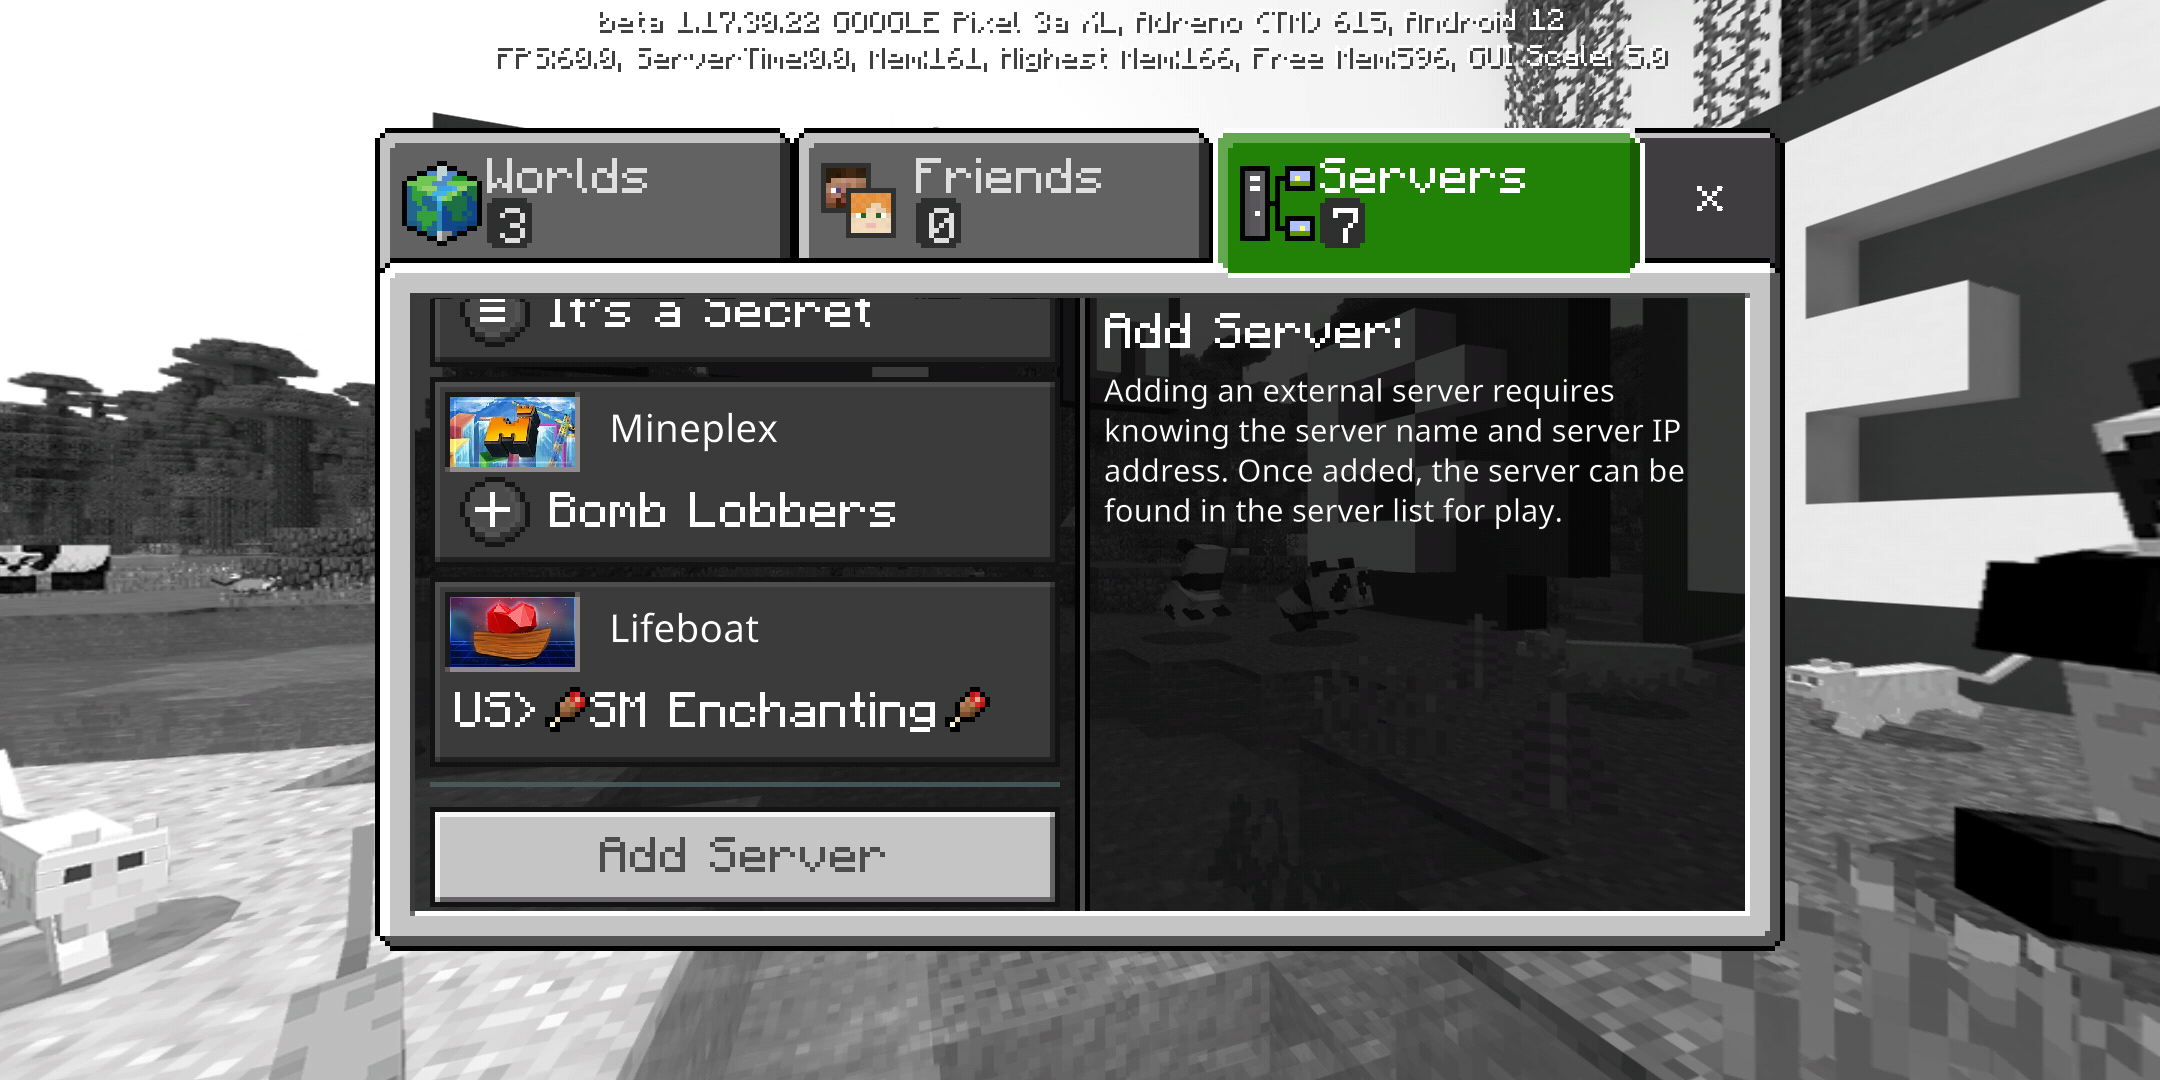 Minecraft Server list scrolled to the bottom with a button to Add Server